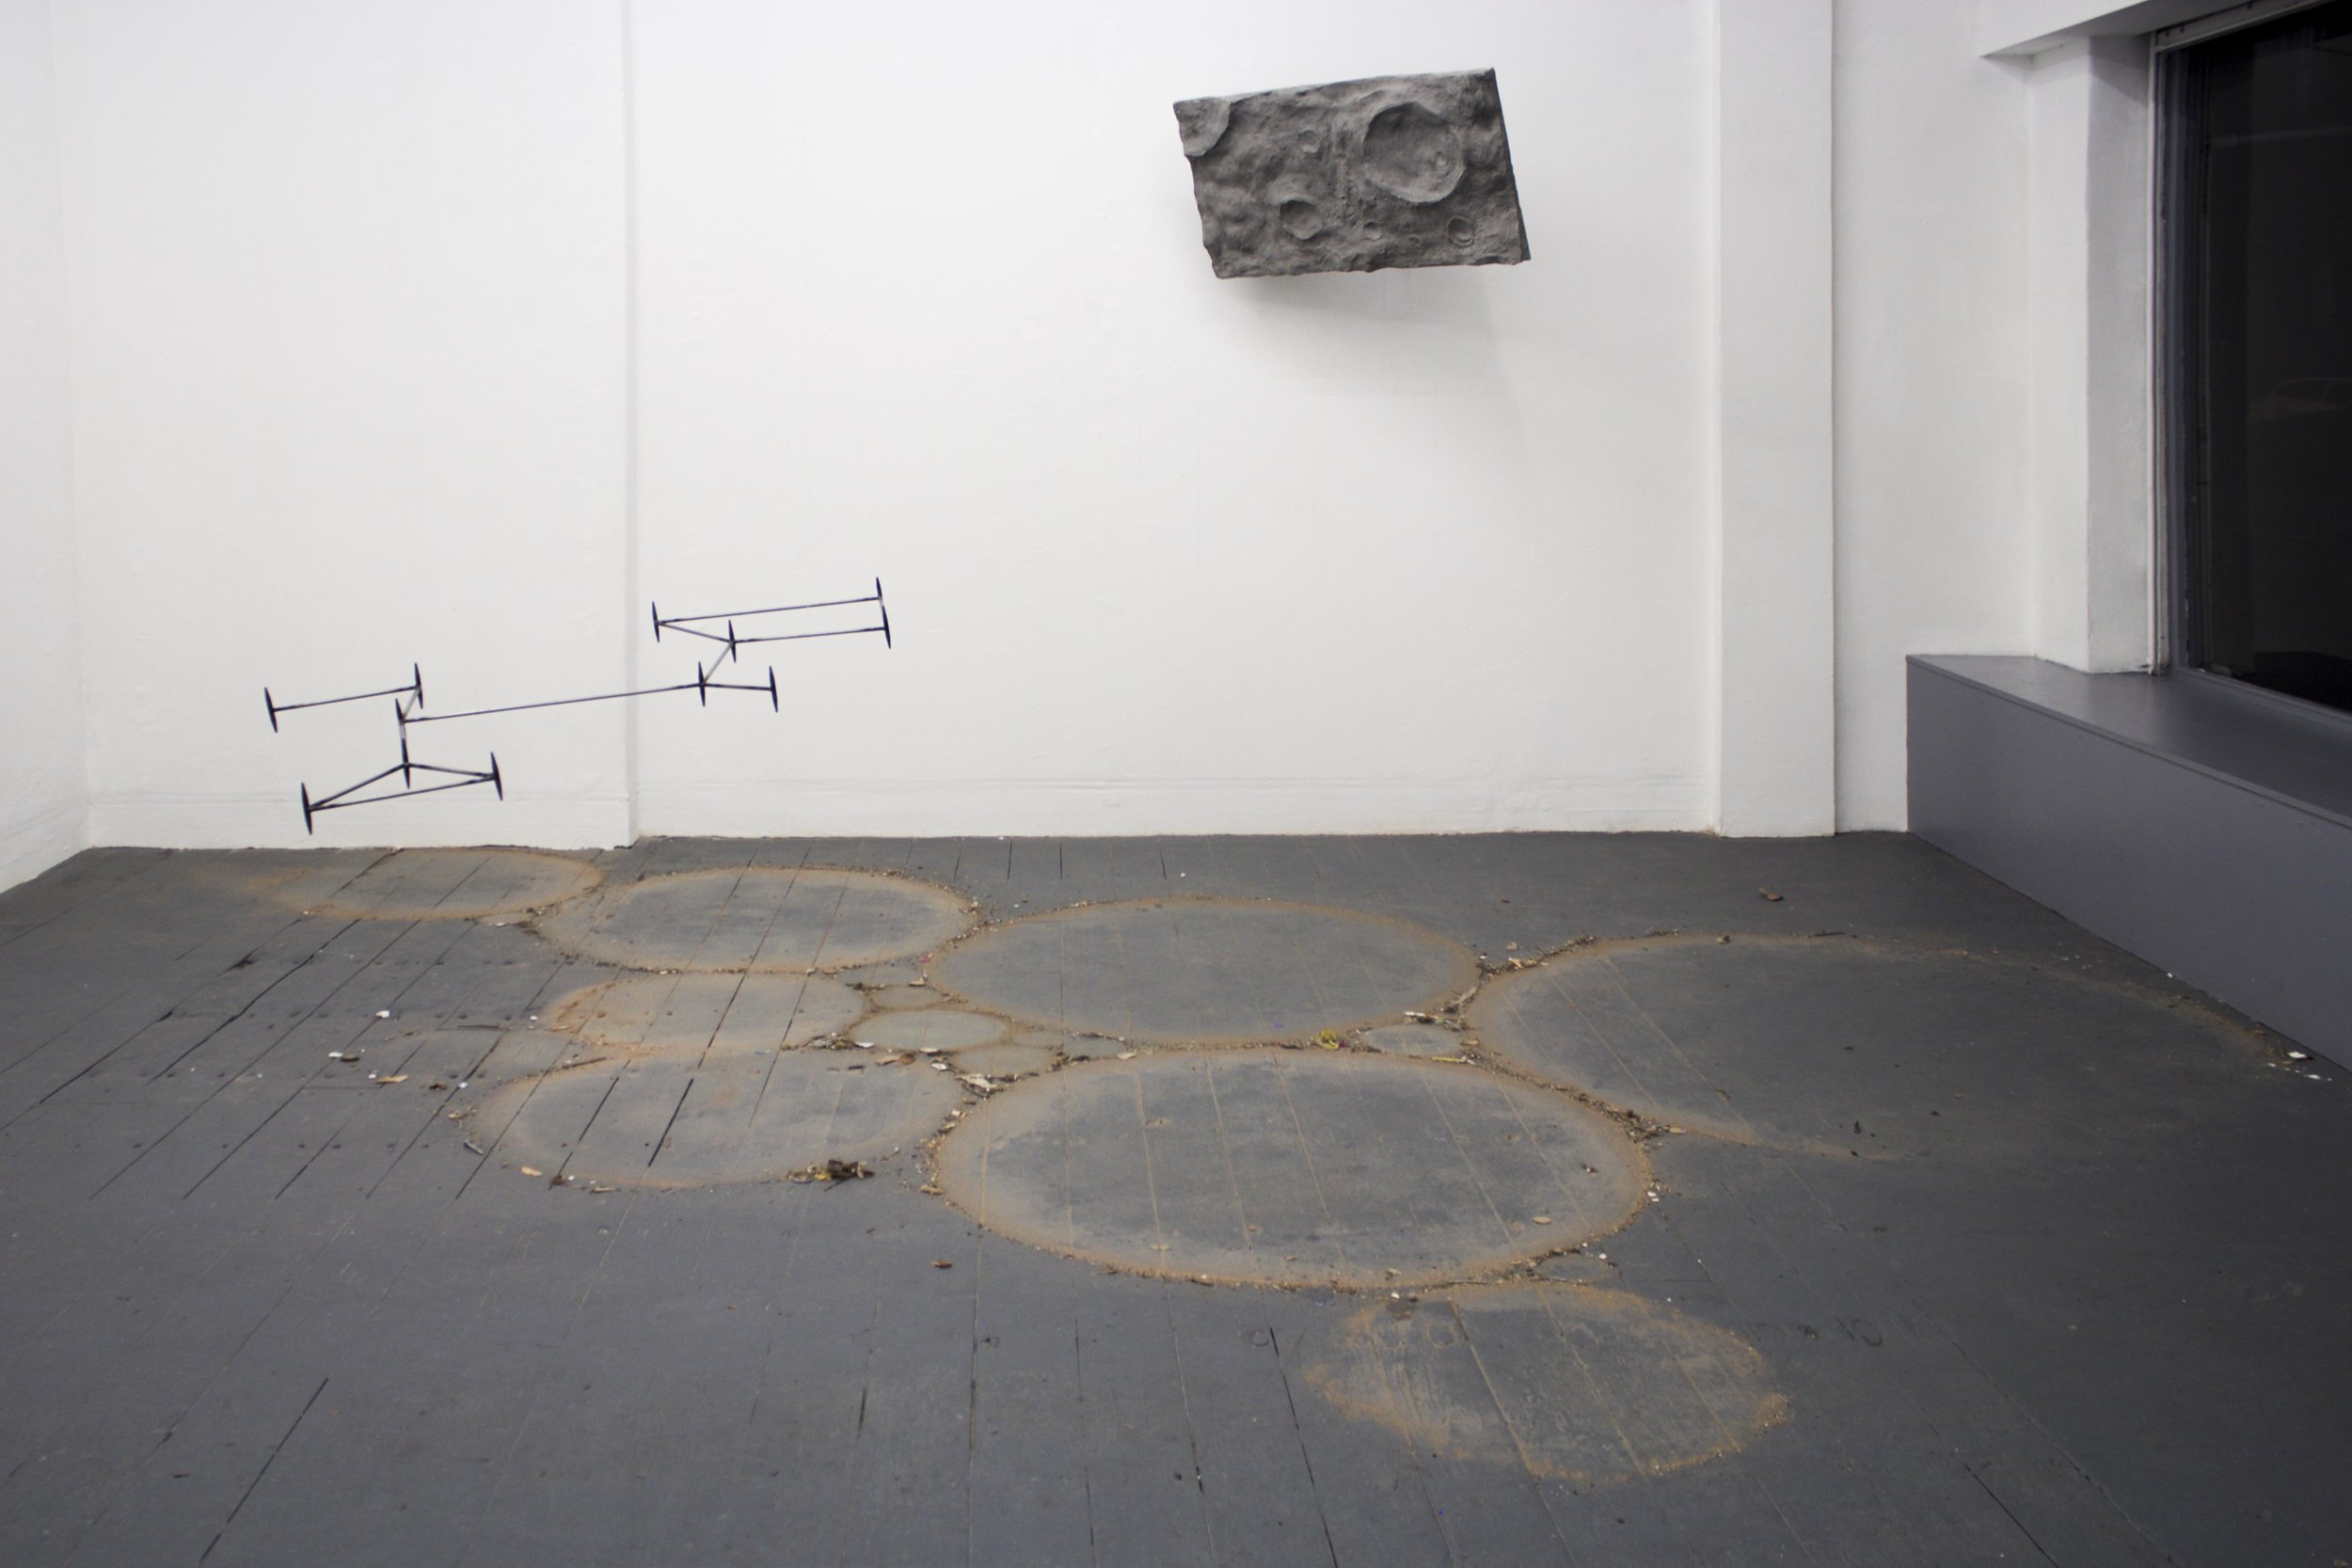 the dust on the floor is gathered from all the places that the artwork is installed, for instance this places include: the institute of contemporary arts london, the bluecoat during the liverpool biennial, the royal society of sculpture, chalton gallery london and my old studio in glasgow.